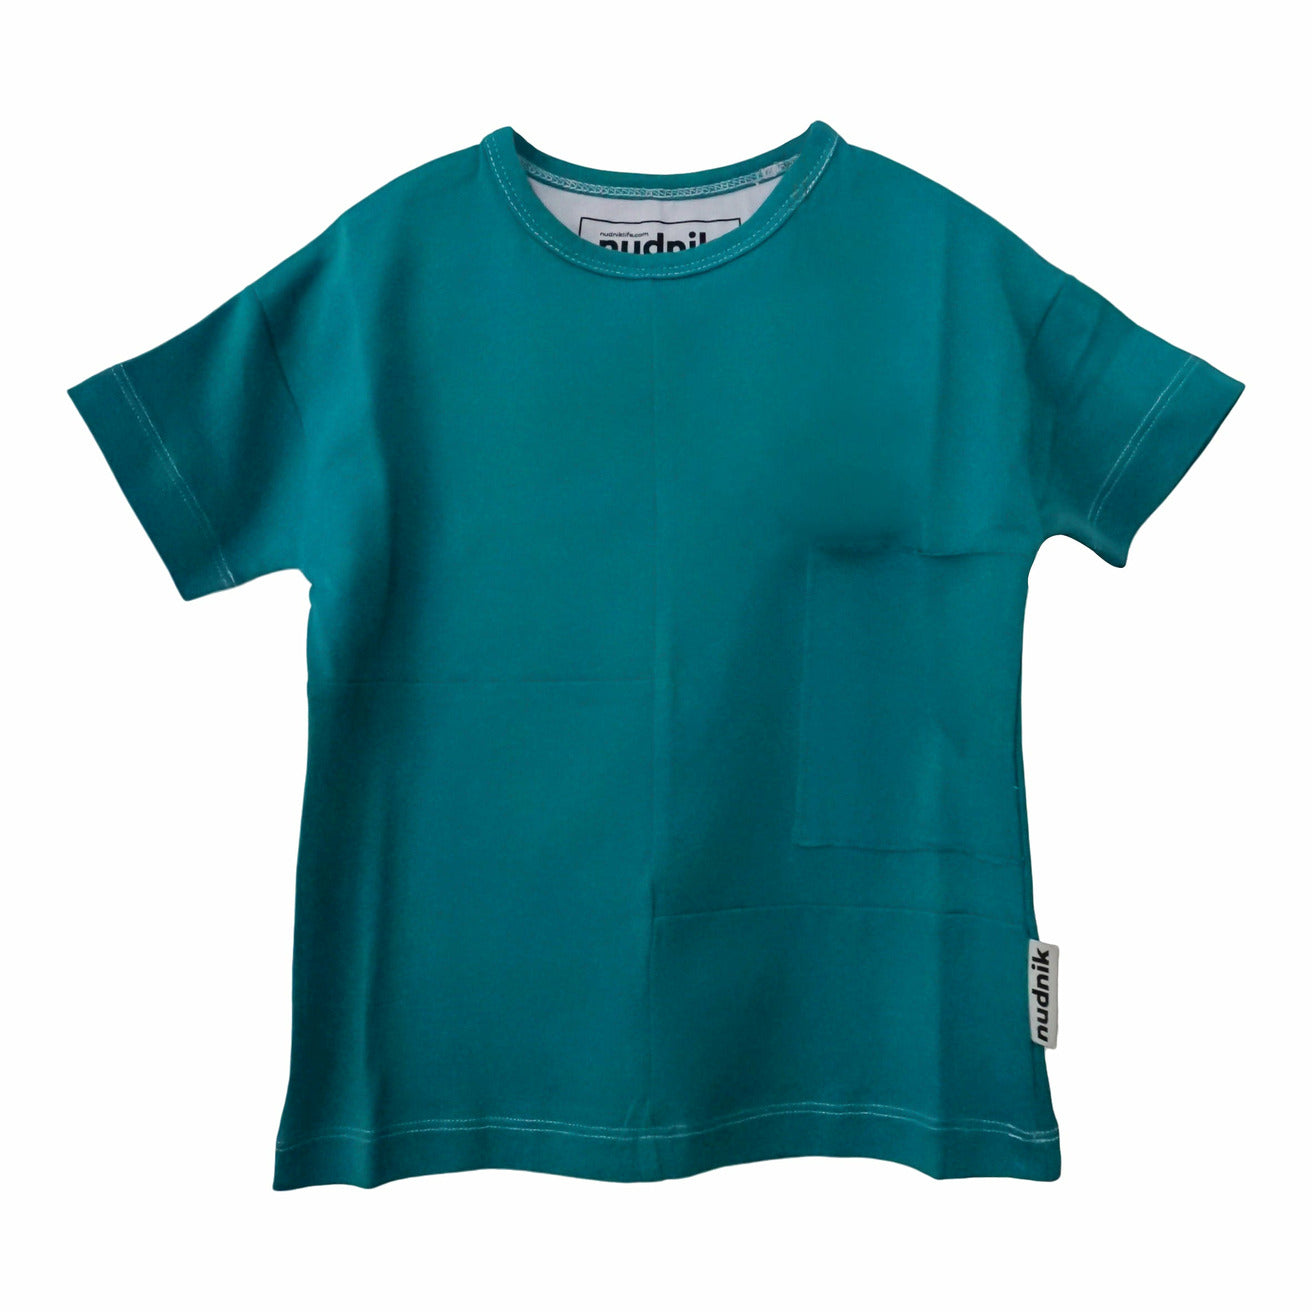 DISRUPTOR TEE in Treat Teal - NUDNIK